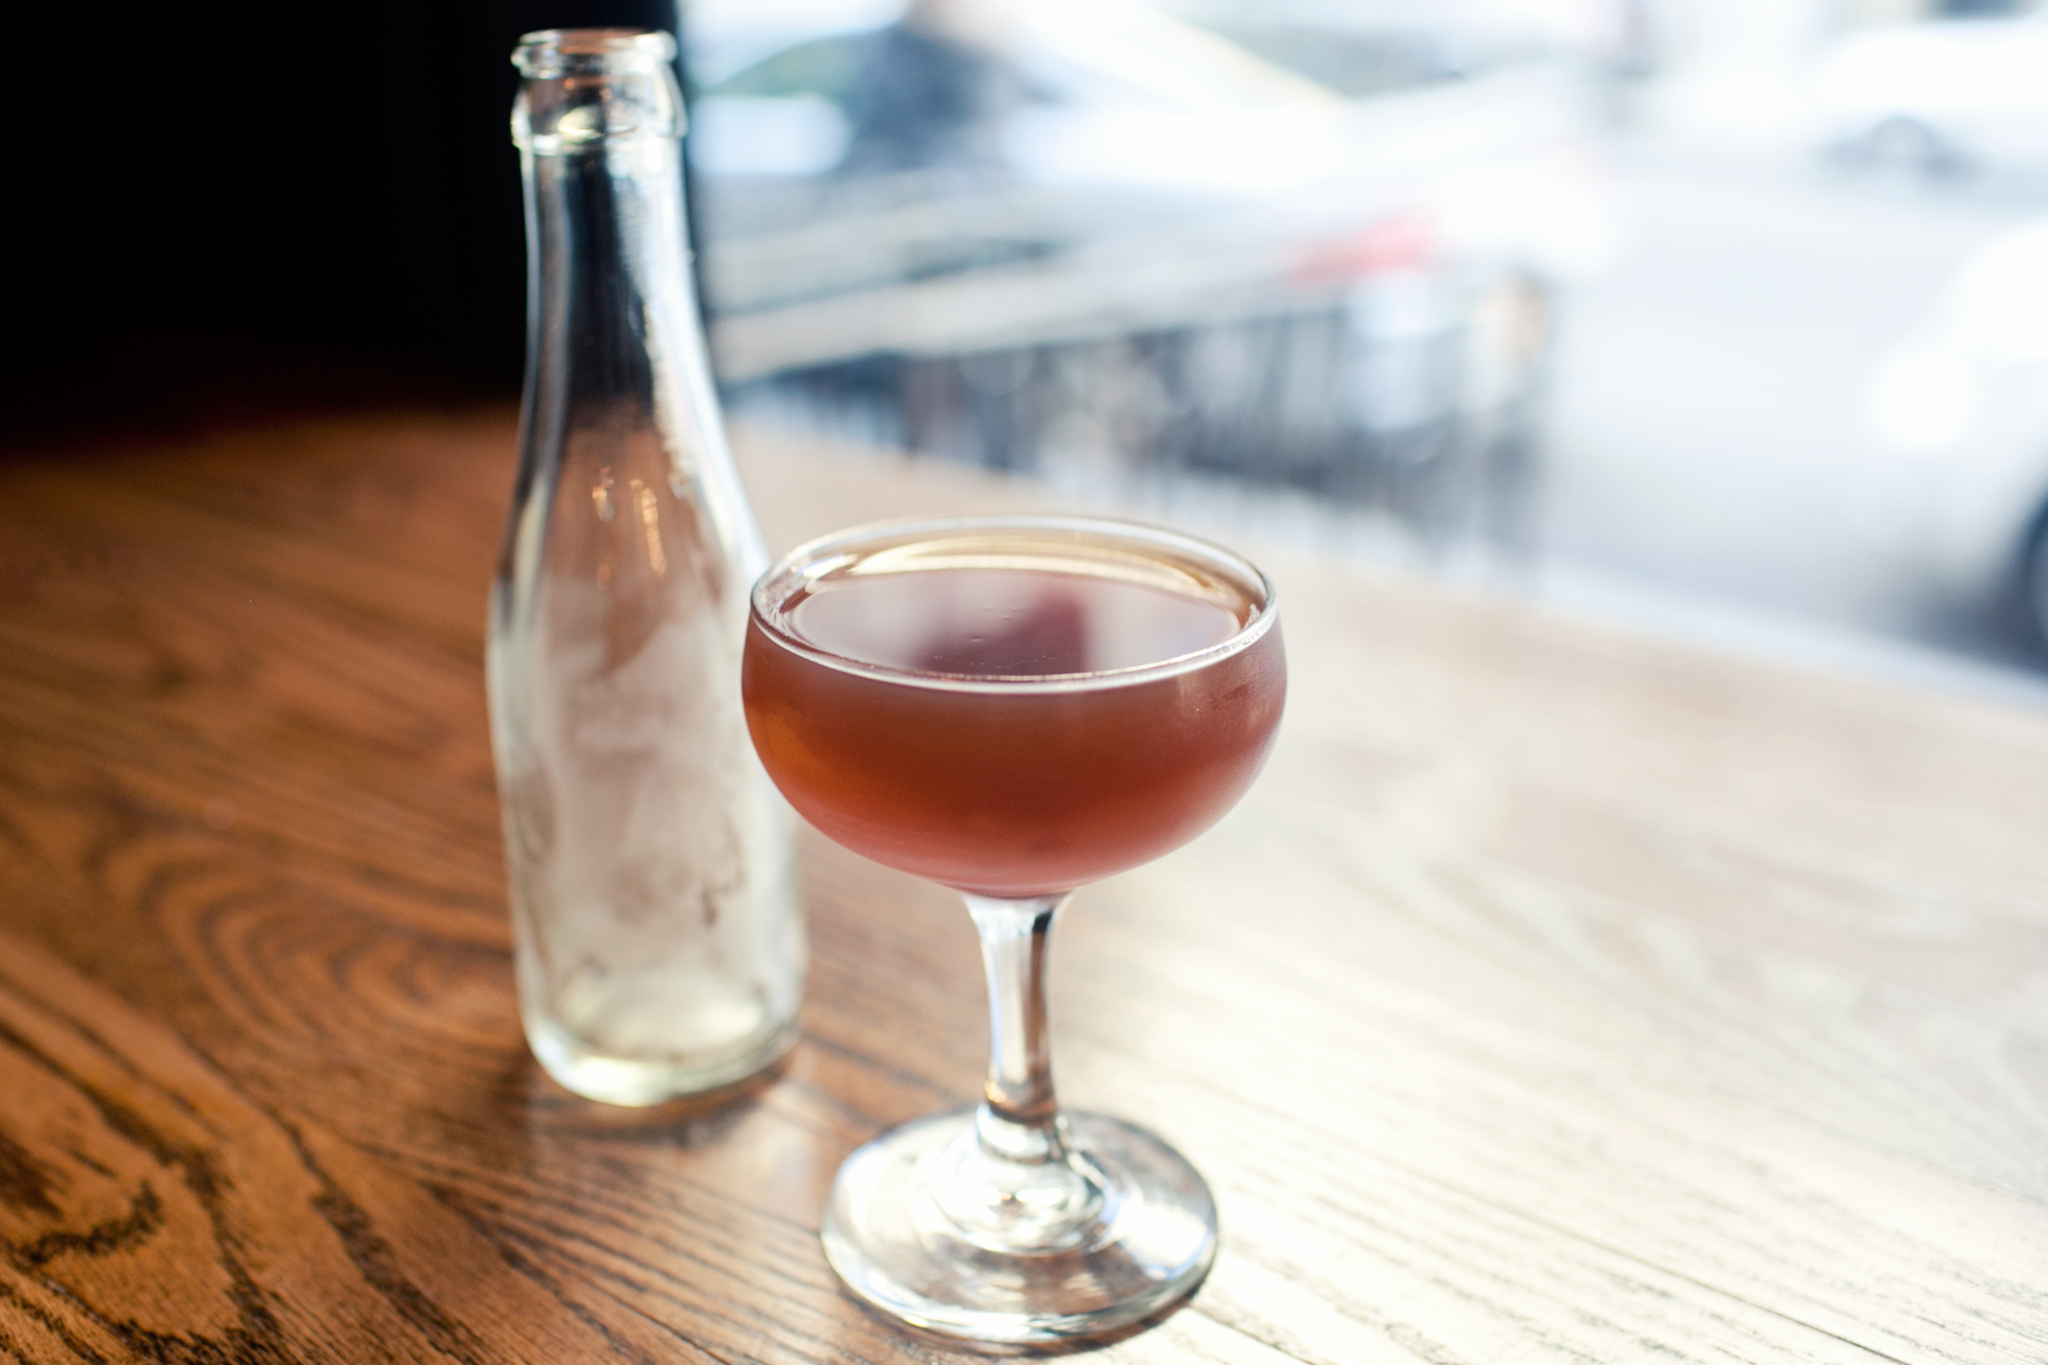 Sip creative cocktails in the East Village